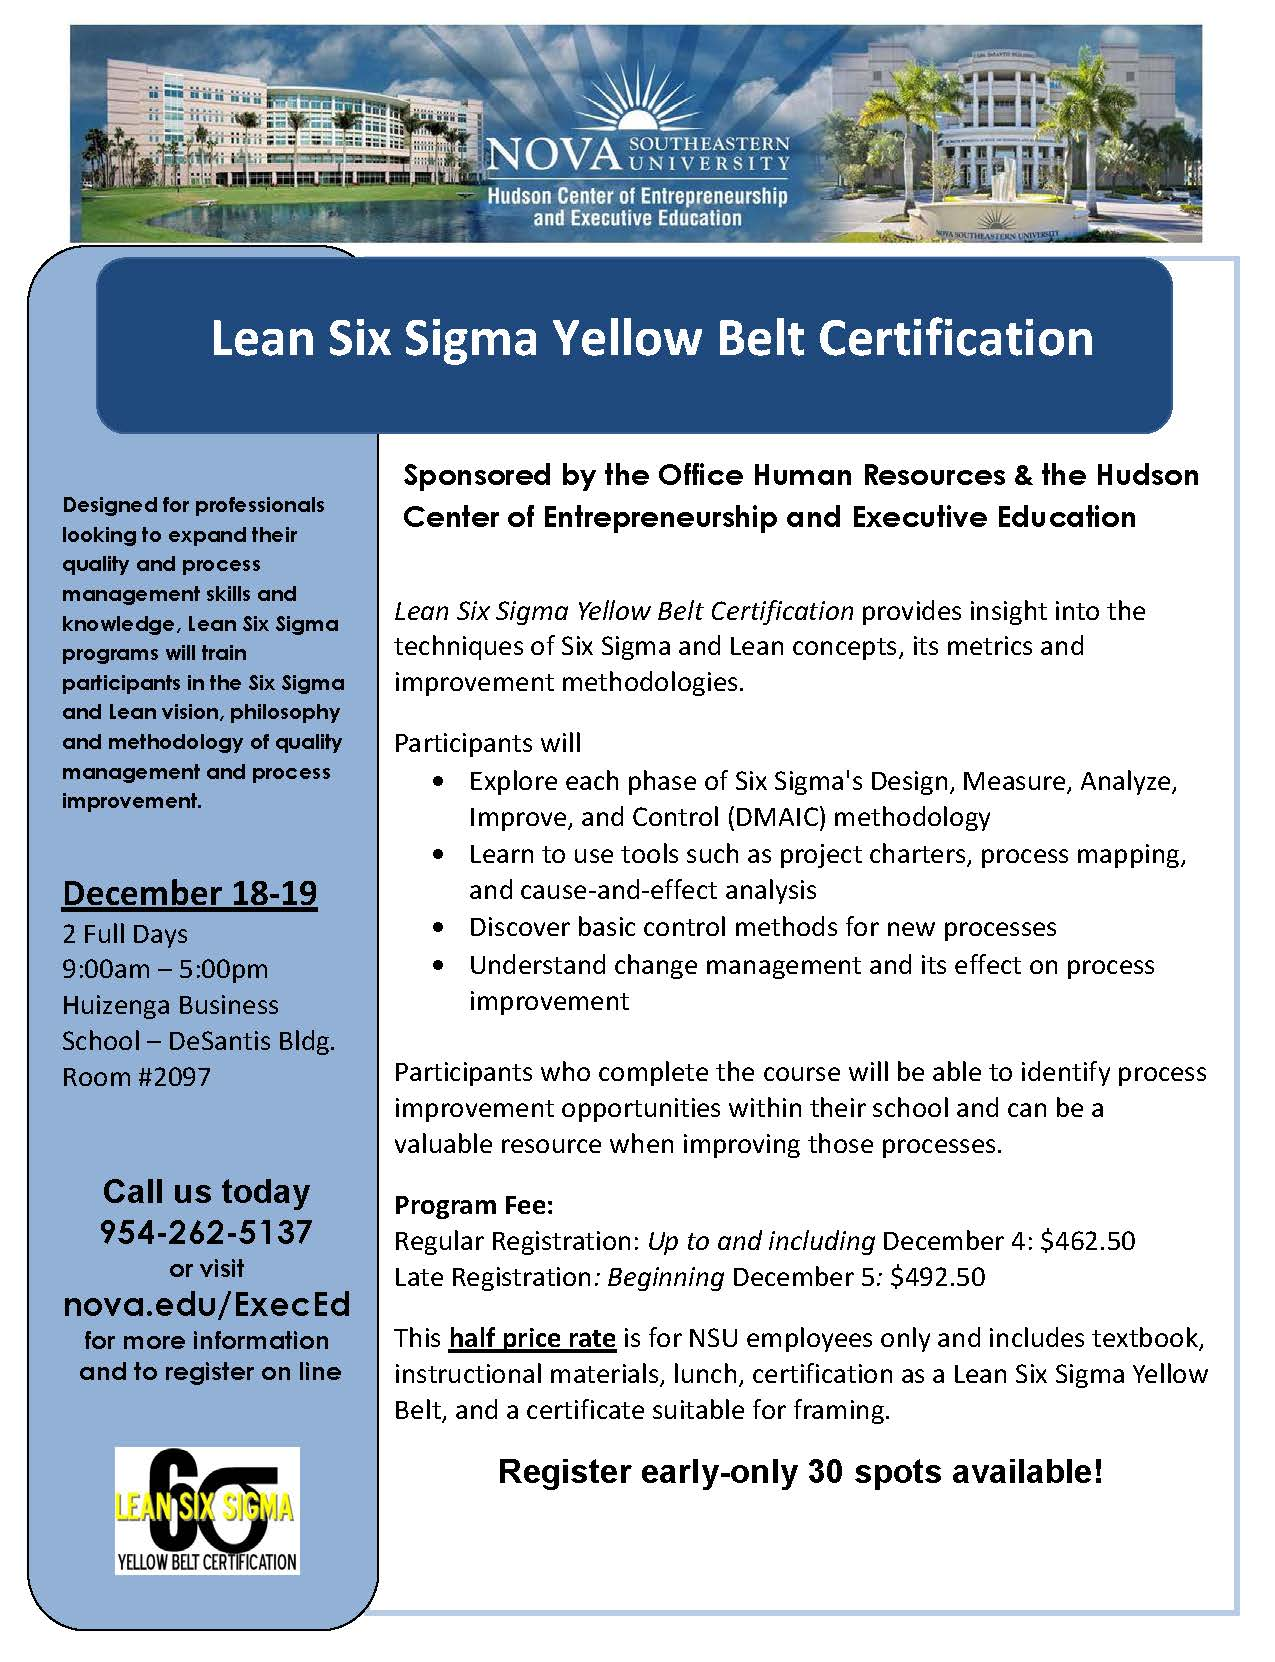 Lean Six Sigma Yellow Belt Certification Dec 18 19 Nsu Newsroom